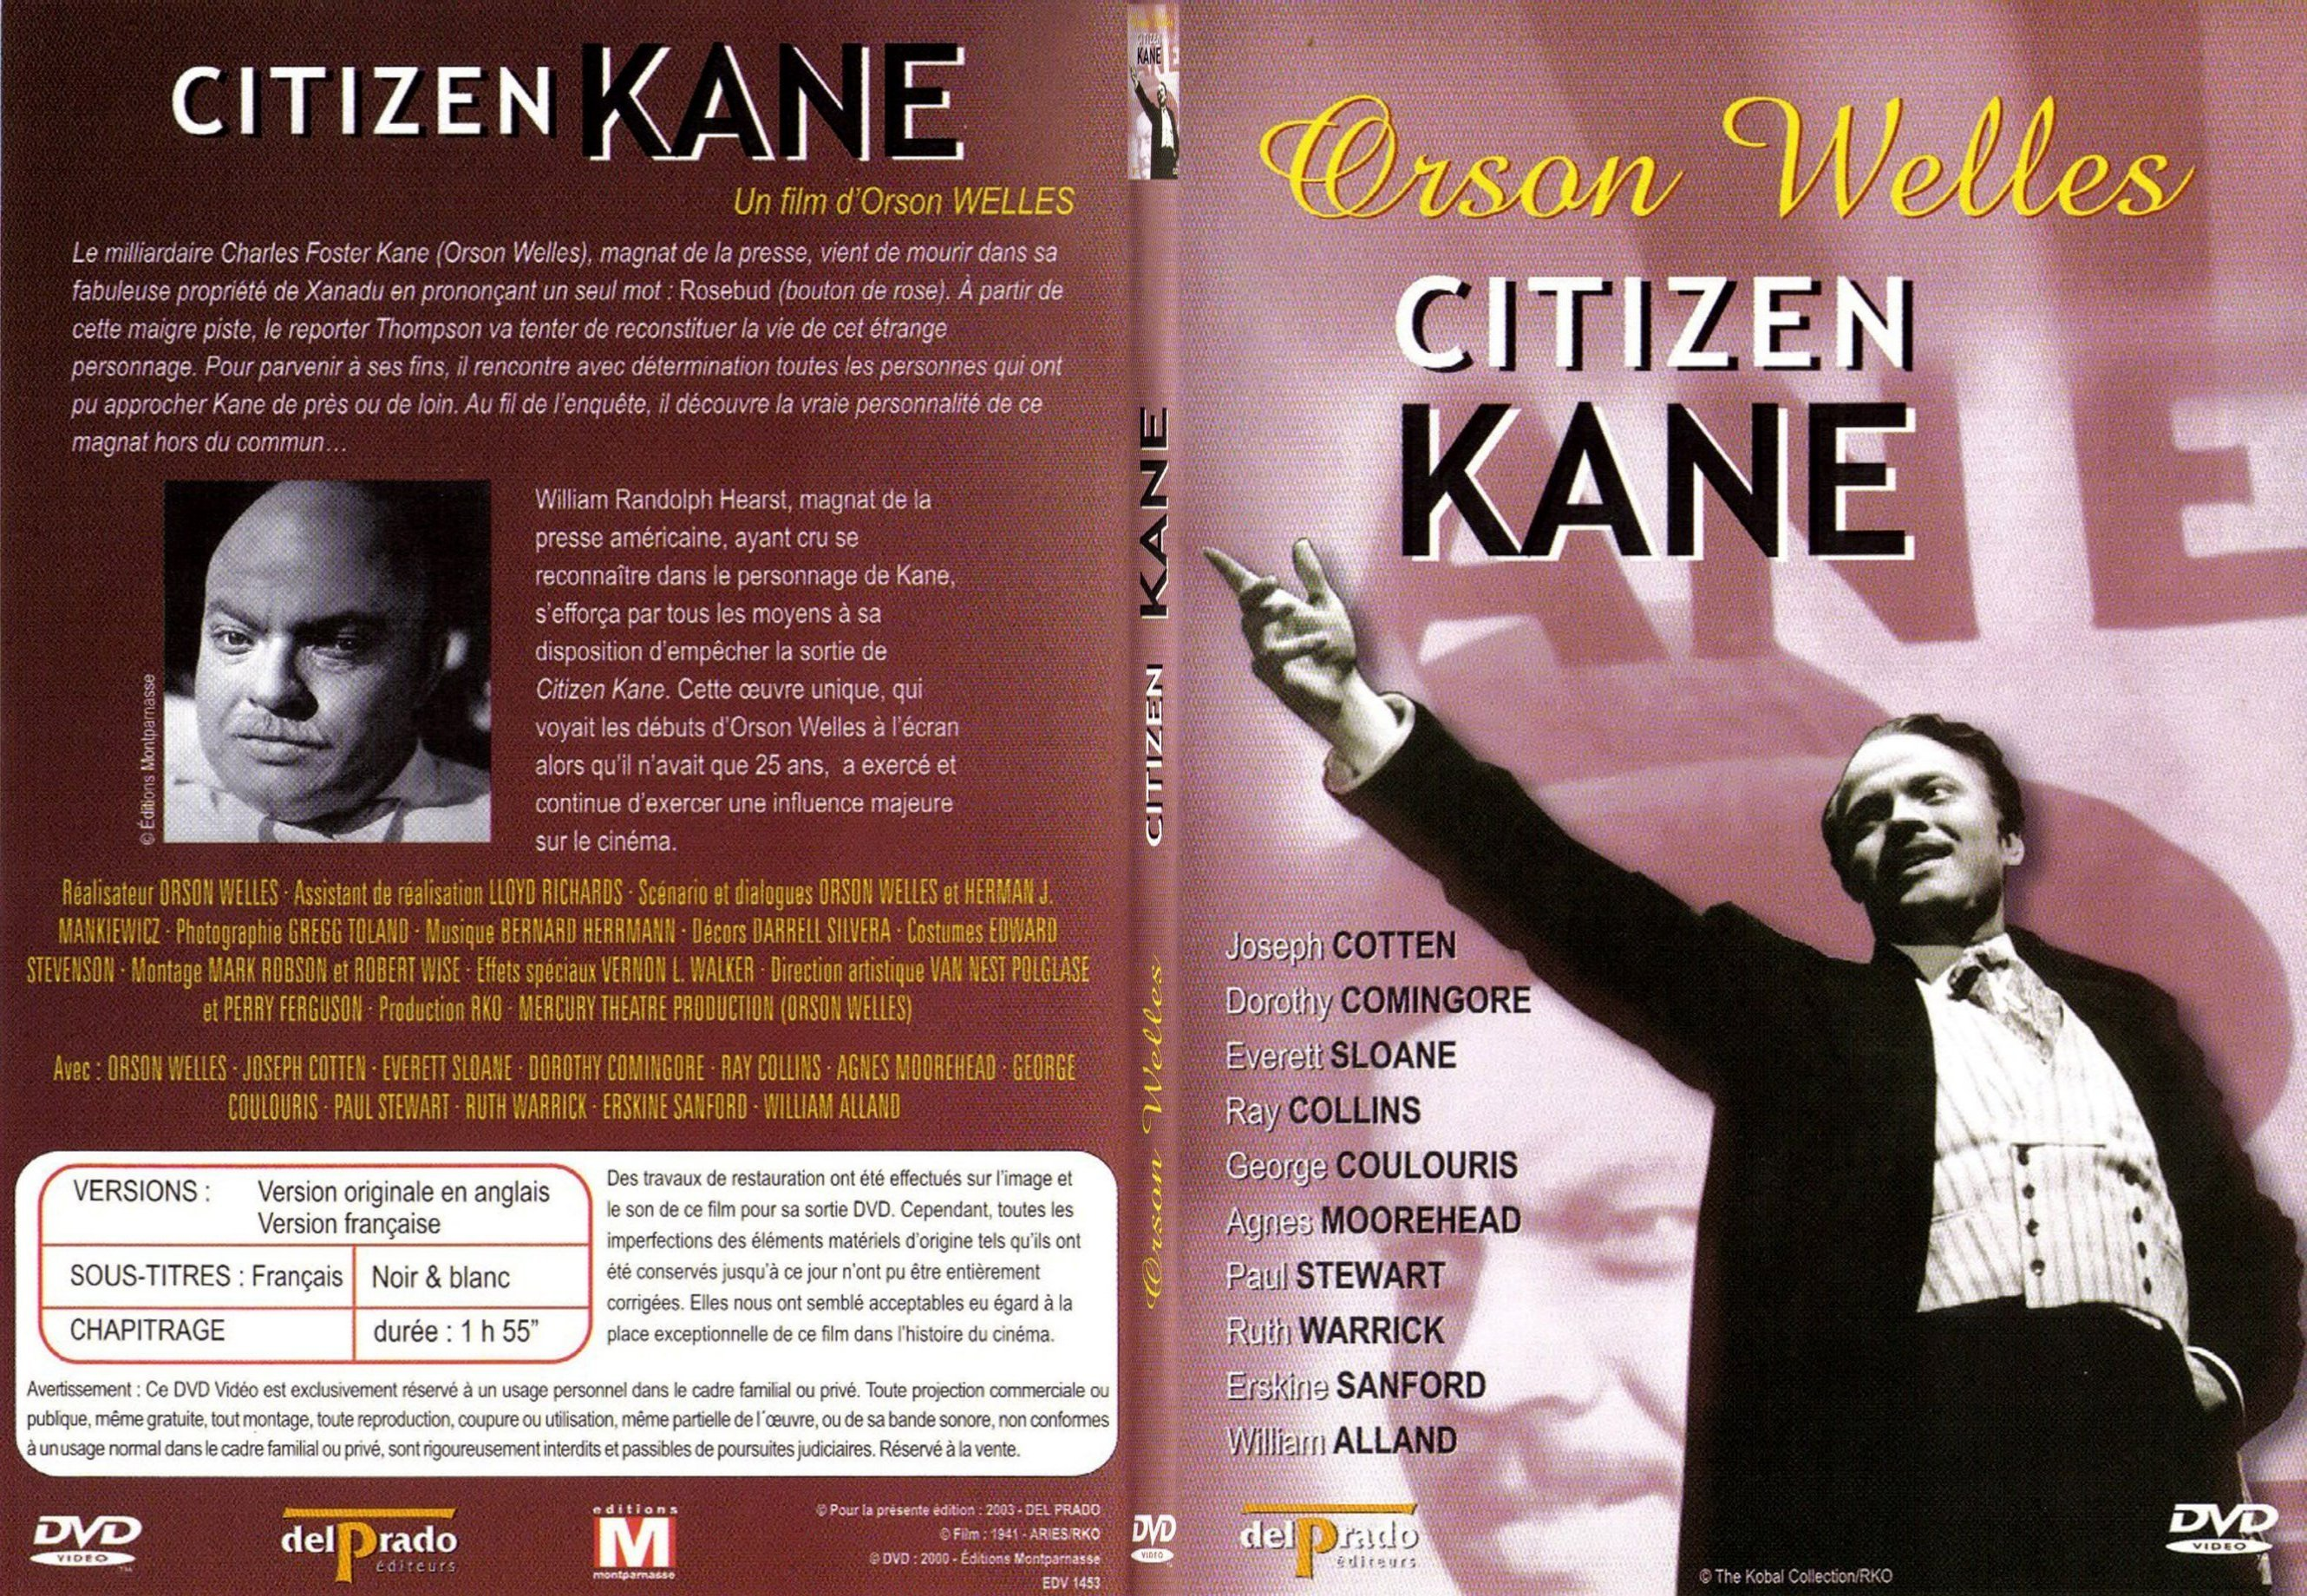 a comparison of the films citizen kane directed by orson welles and joseph sternberg the scarlet emp + produced, wrote, directed 500 films + fantastic and bizarre + use of color + directed by orson welles + director of citizen kane.